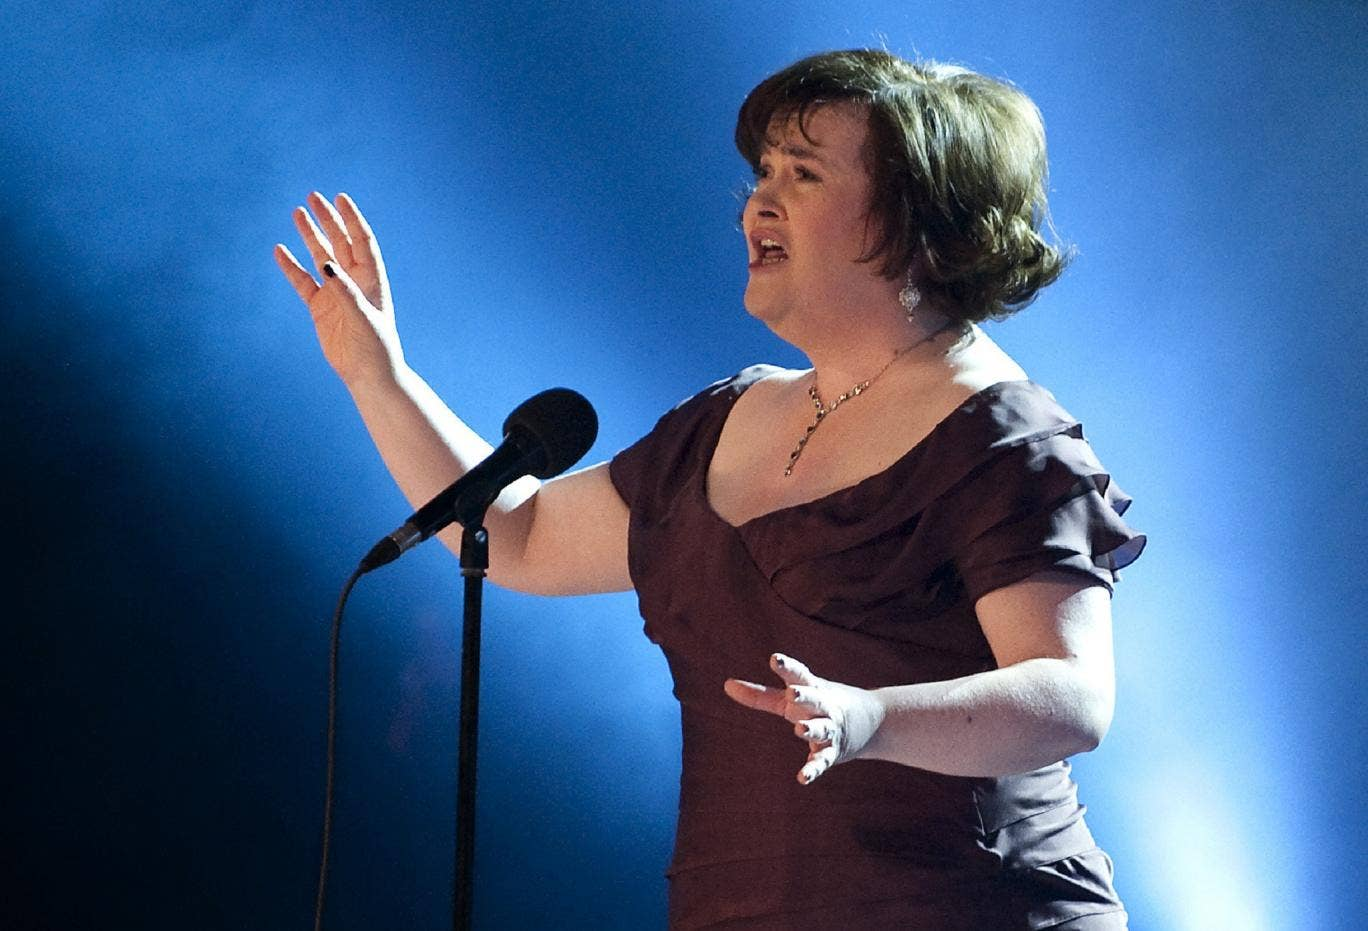 Susan Boyle, here performing 'I Dreamed A Dream', has tipped Meryl Streep to play her in a film about her life